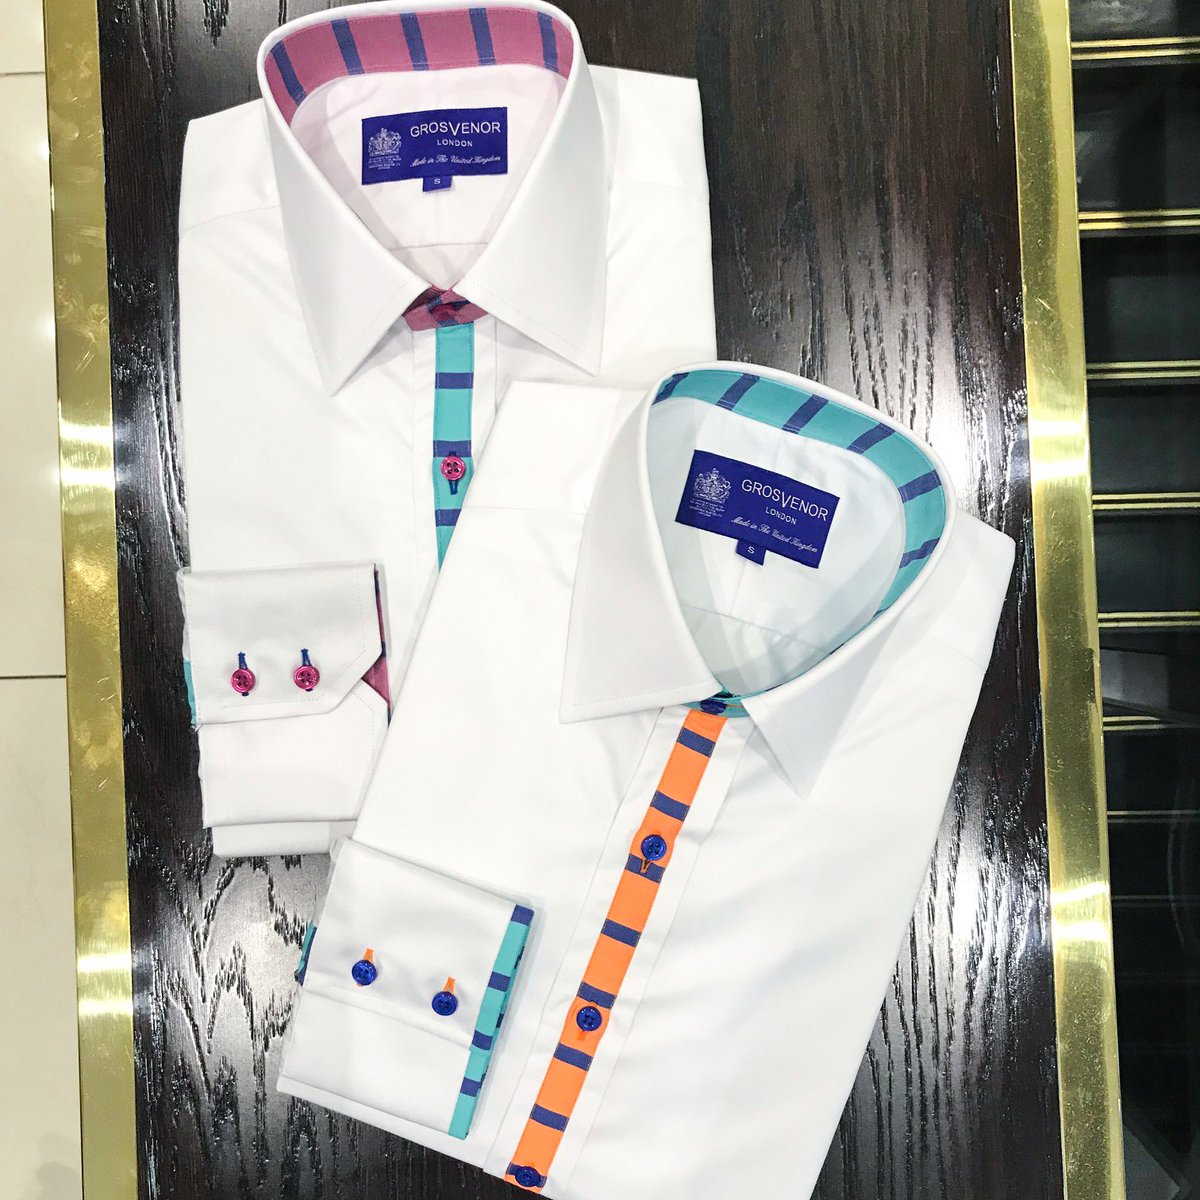 648e32aef95 New AW18 Signature shirts in store now. Come check them out.   grosvenorshirts  jermynstreet  mensstyle  mensfashion   madeinukpic.twitter.com mH8lgAfHIR